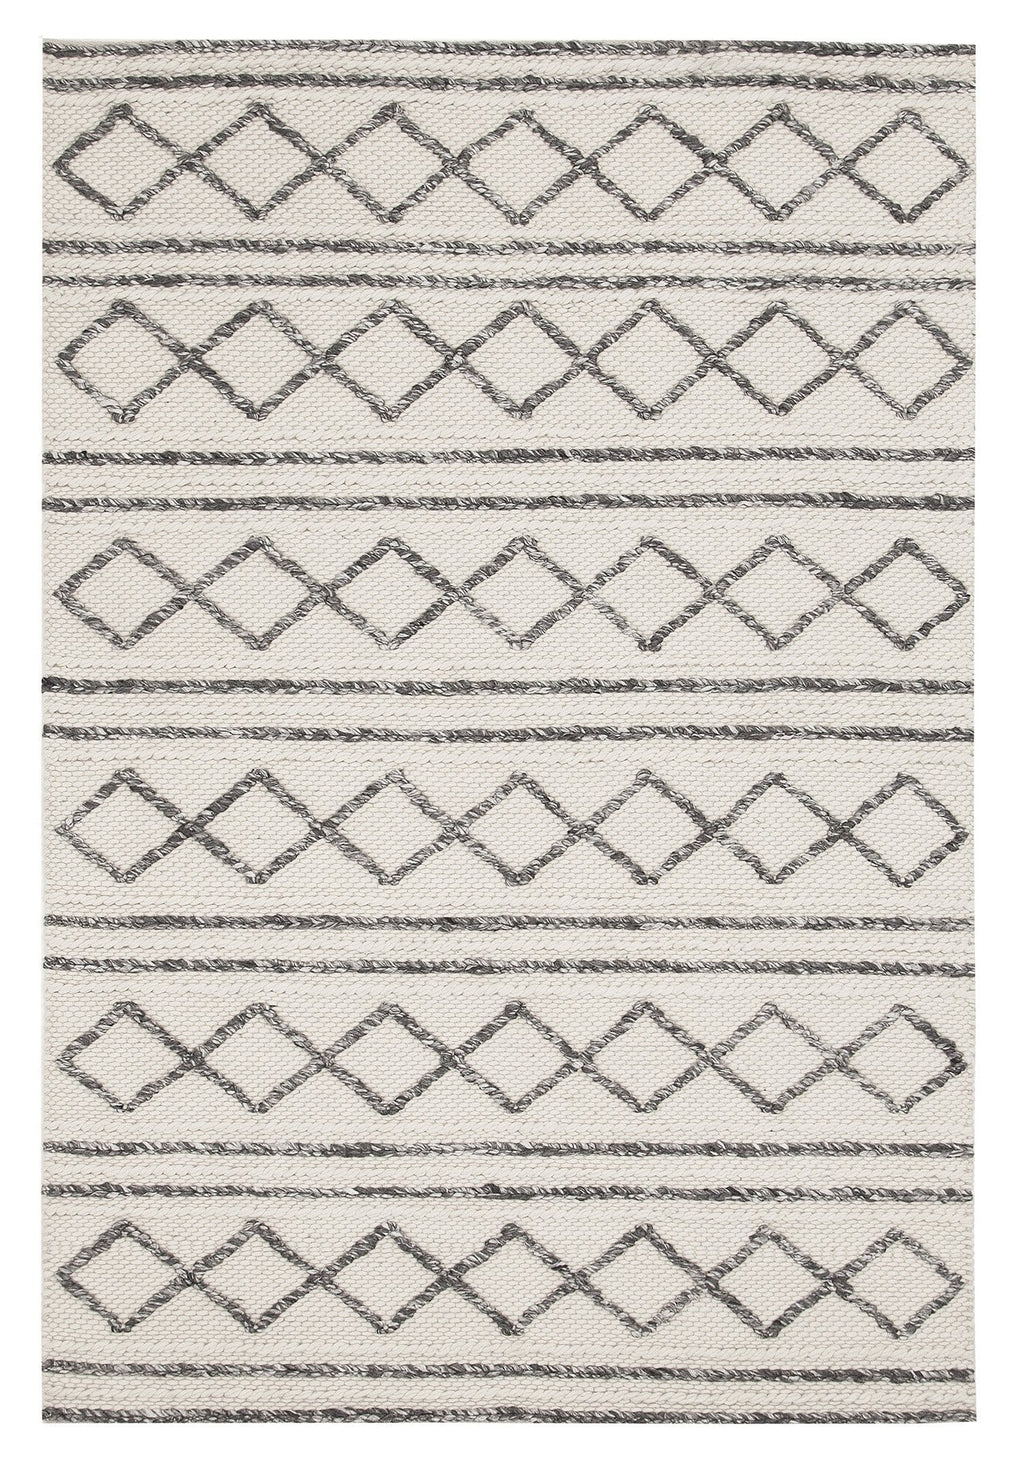 Natchez Textured Tribal Wool & Viscose Rug